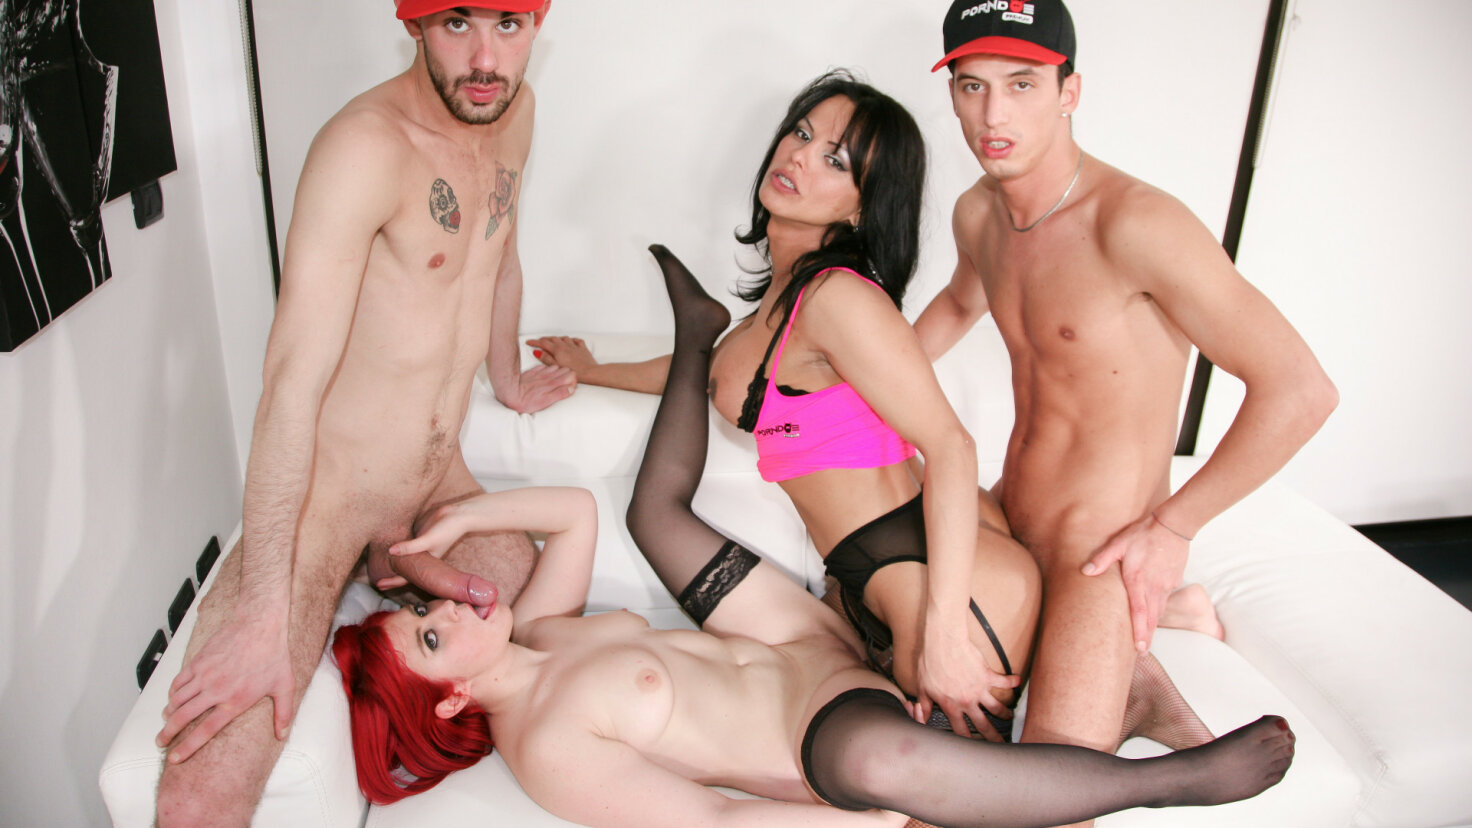 Naughty foursome with sexy Latina tranny and Italian redhead fucking studs